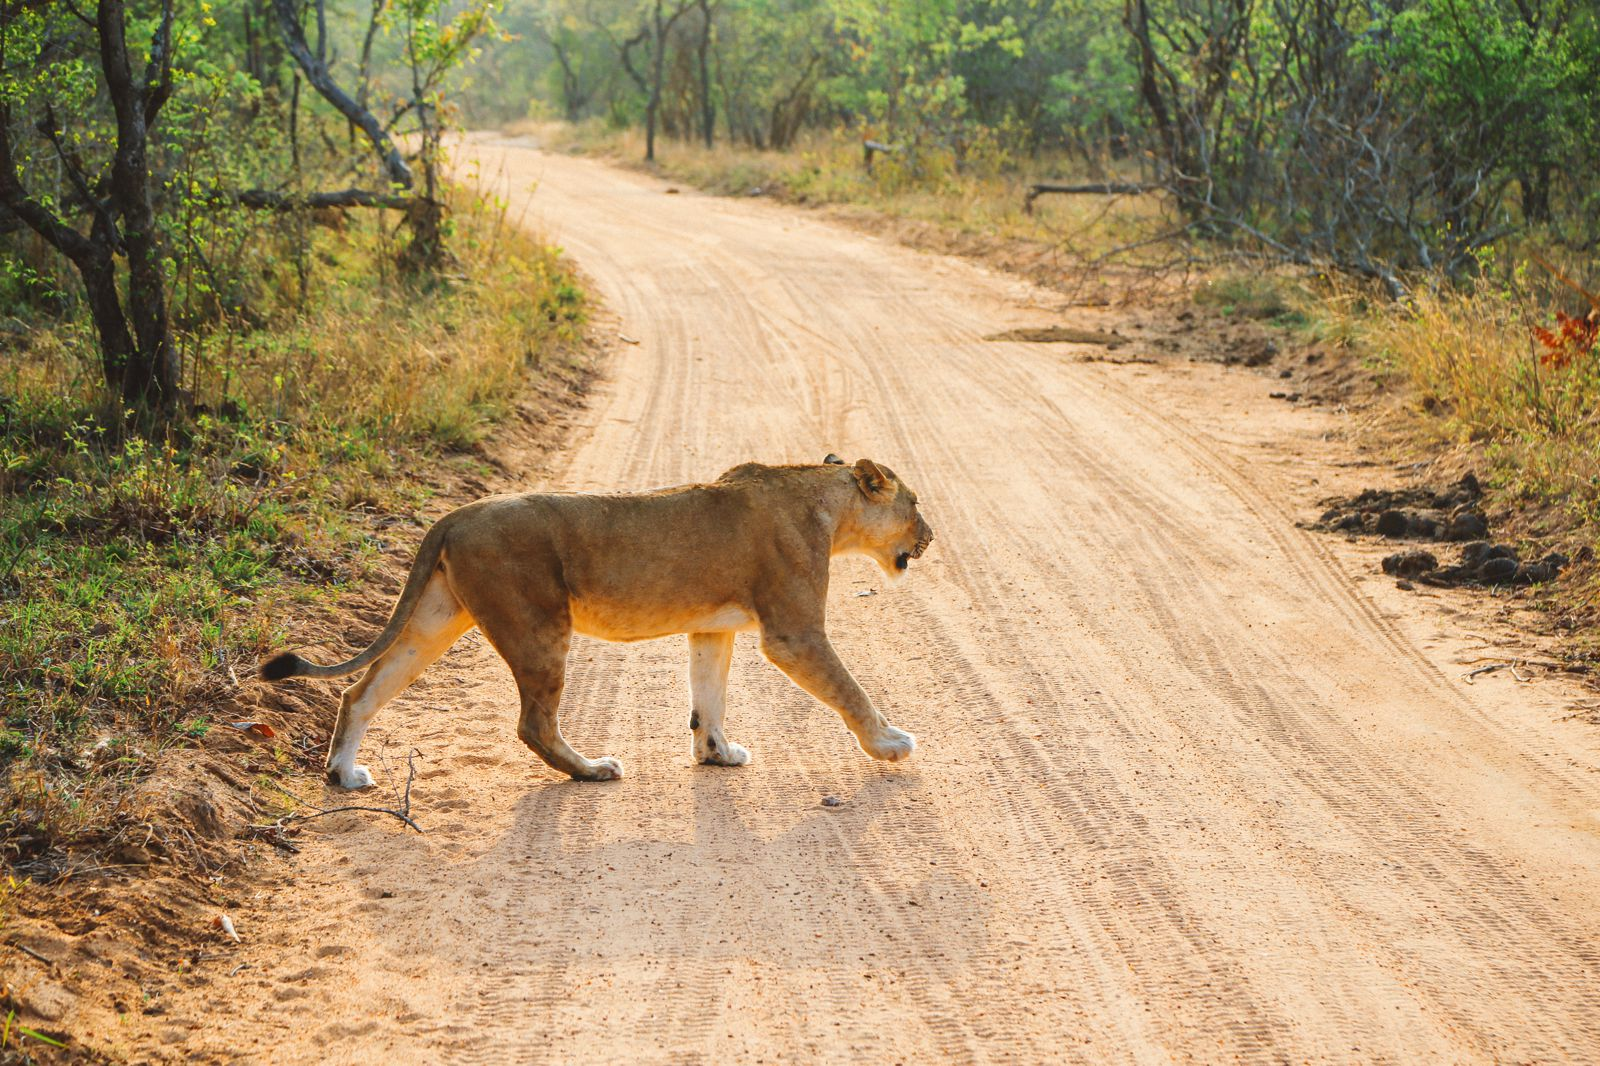 What's It Like To Be Stuck In A Pride Of Lions On Safari In South Africa? (17)